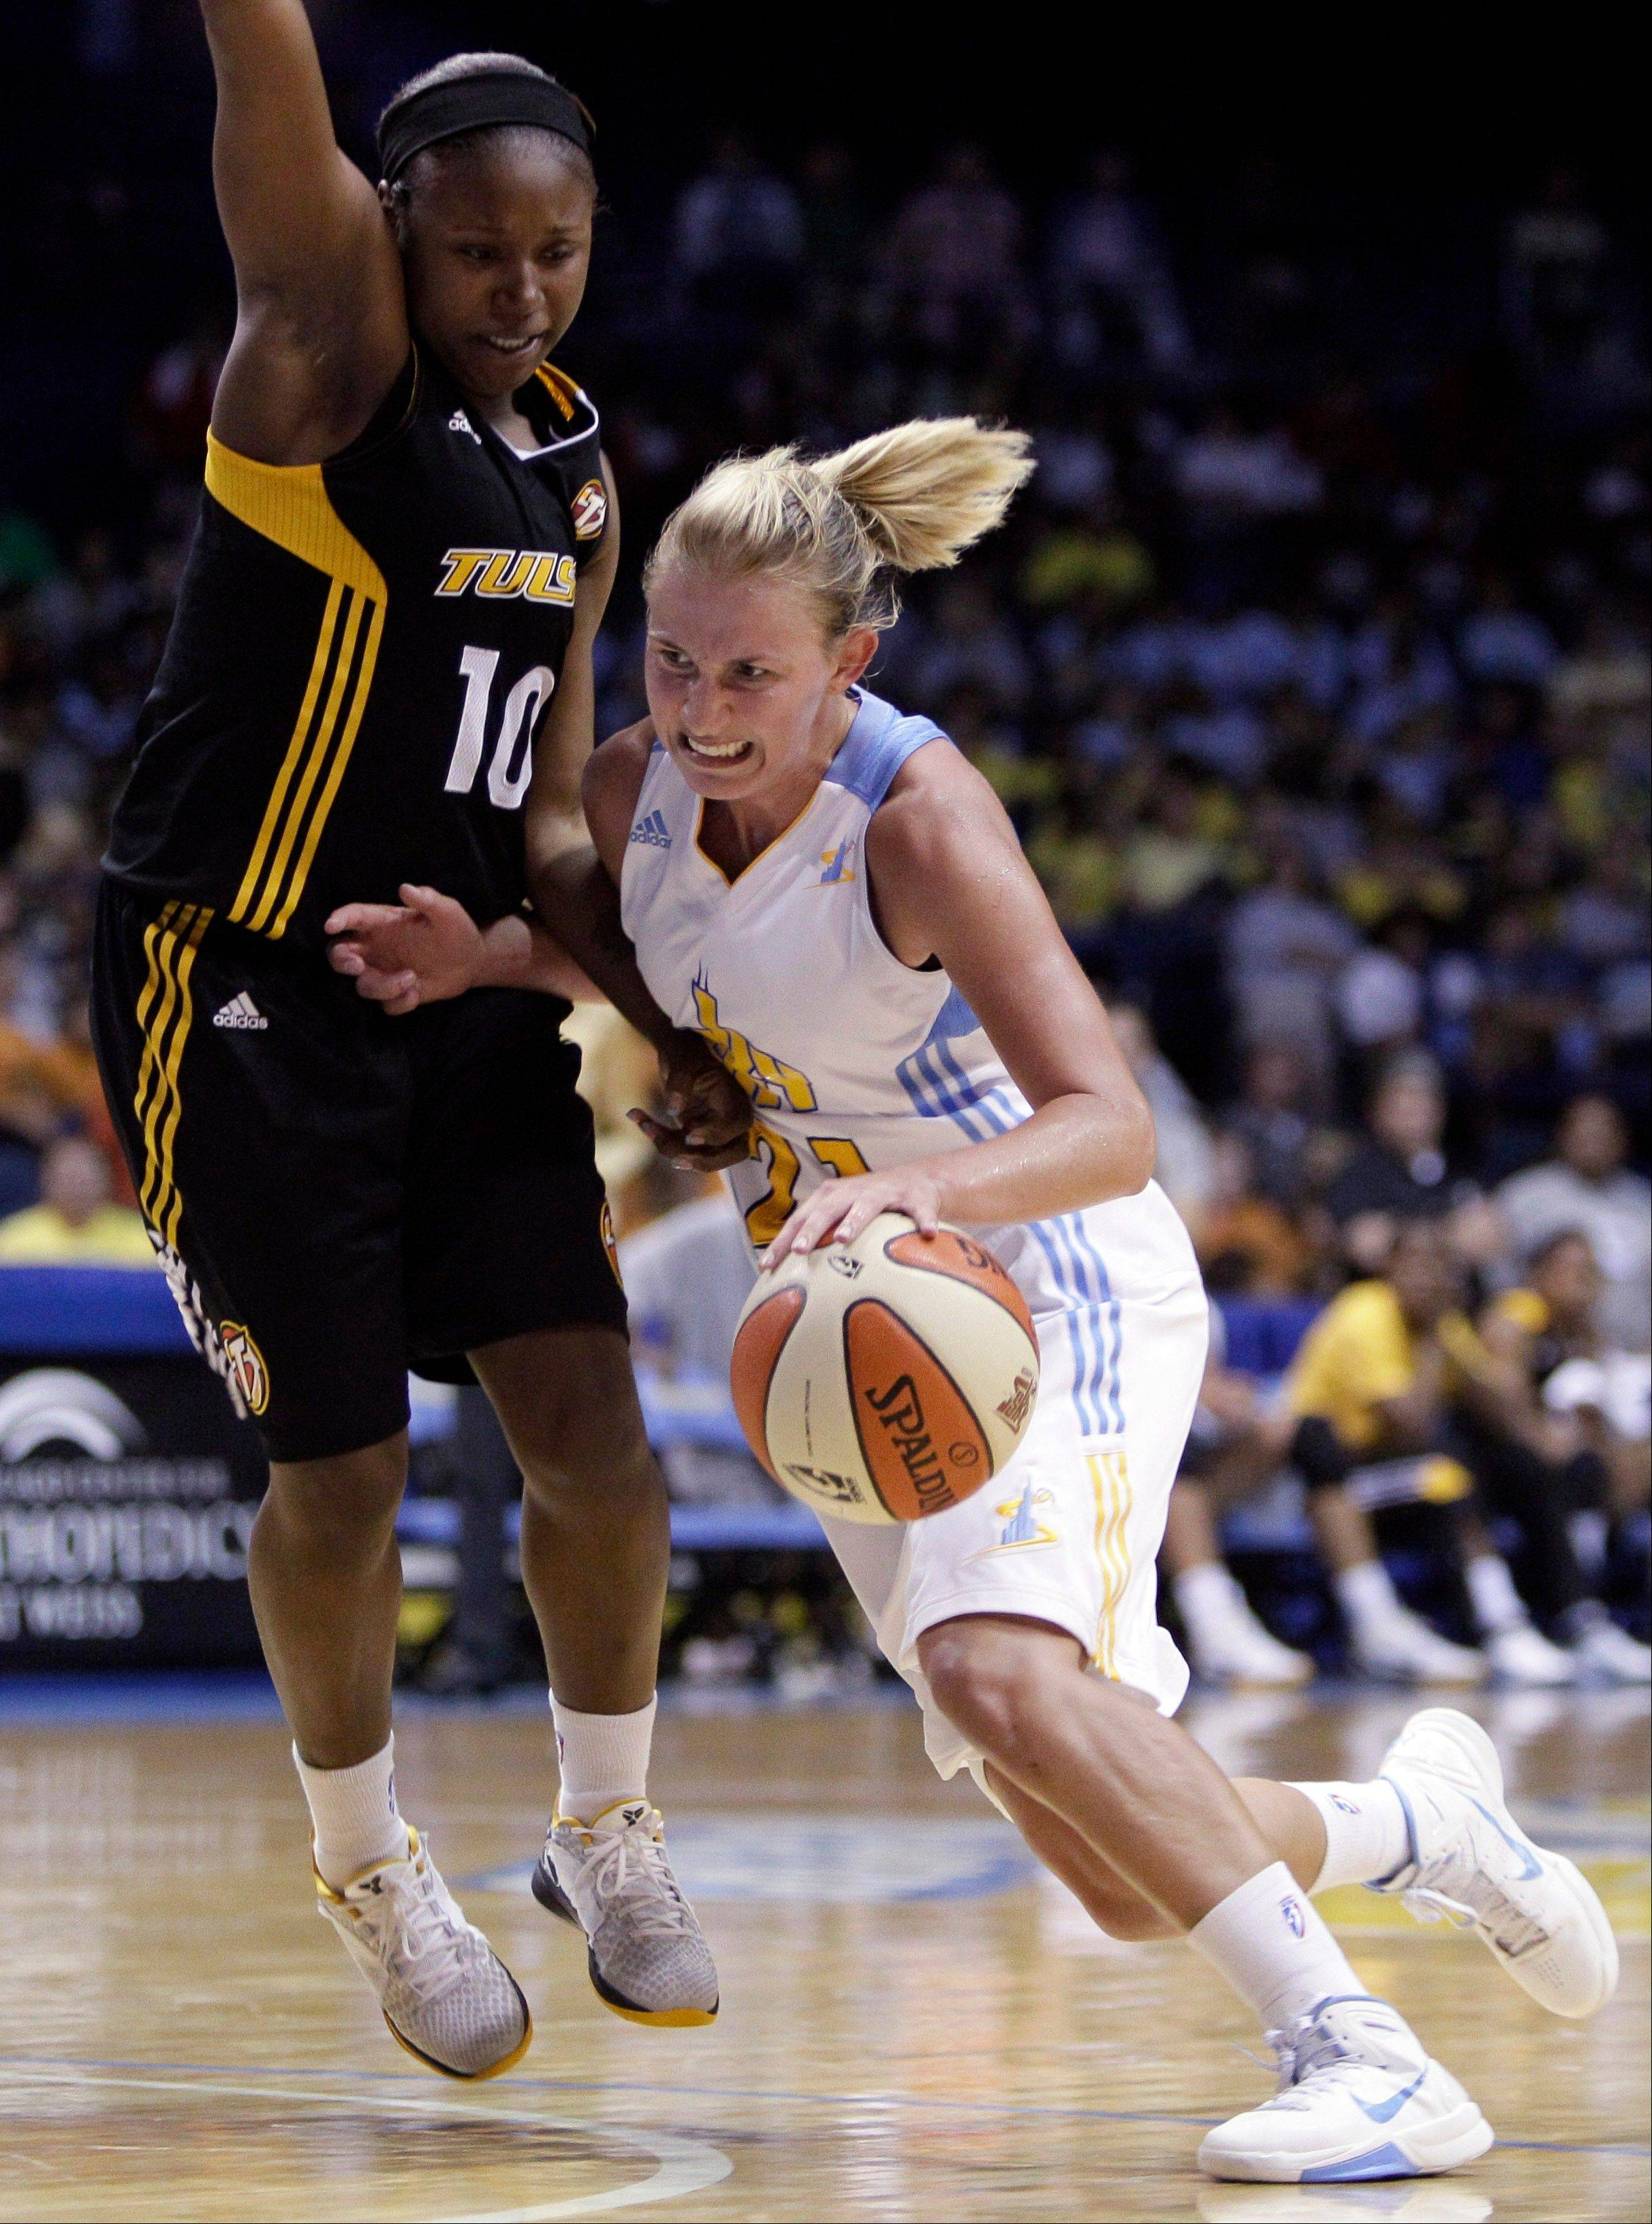 Chicago Sky's Courtney Vandersloot, right, drives to the basket as Tulsa Shock's Andrea Riley guards during the second half of an WNBA basketball game on Wednesday, July 13, 2011, in Rosemont, Ill. The Sky won 72-54.